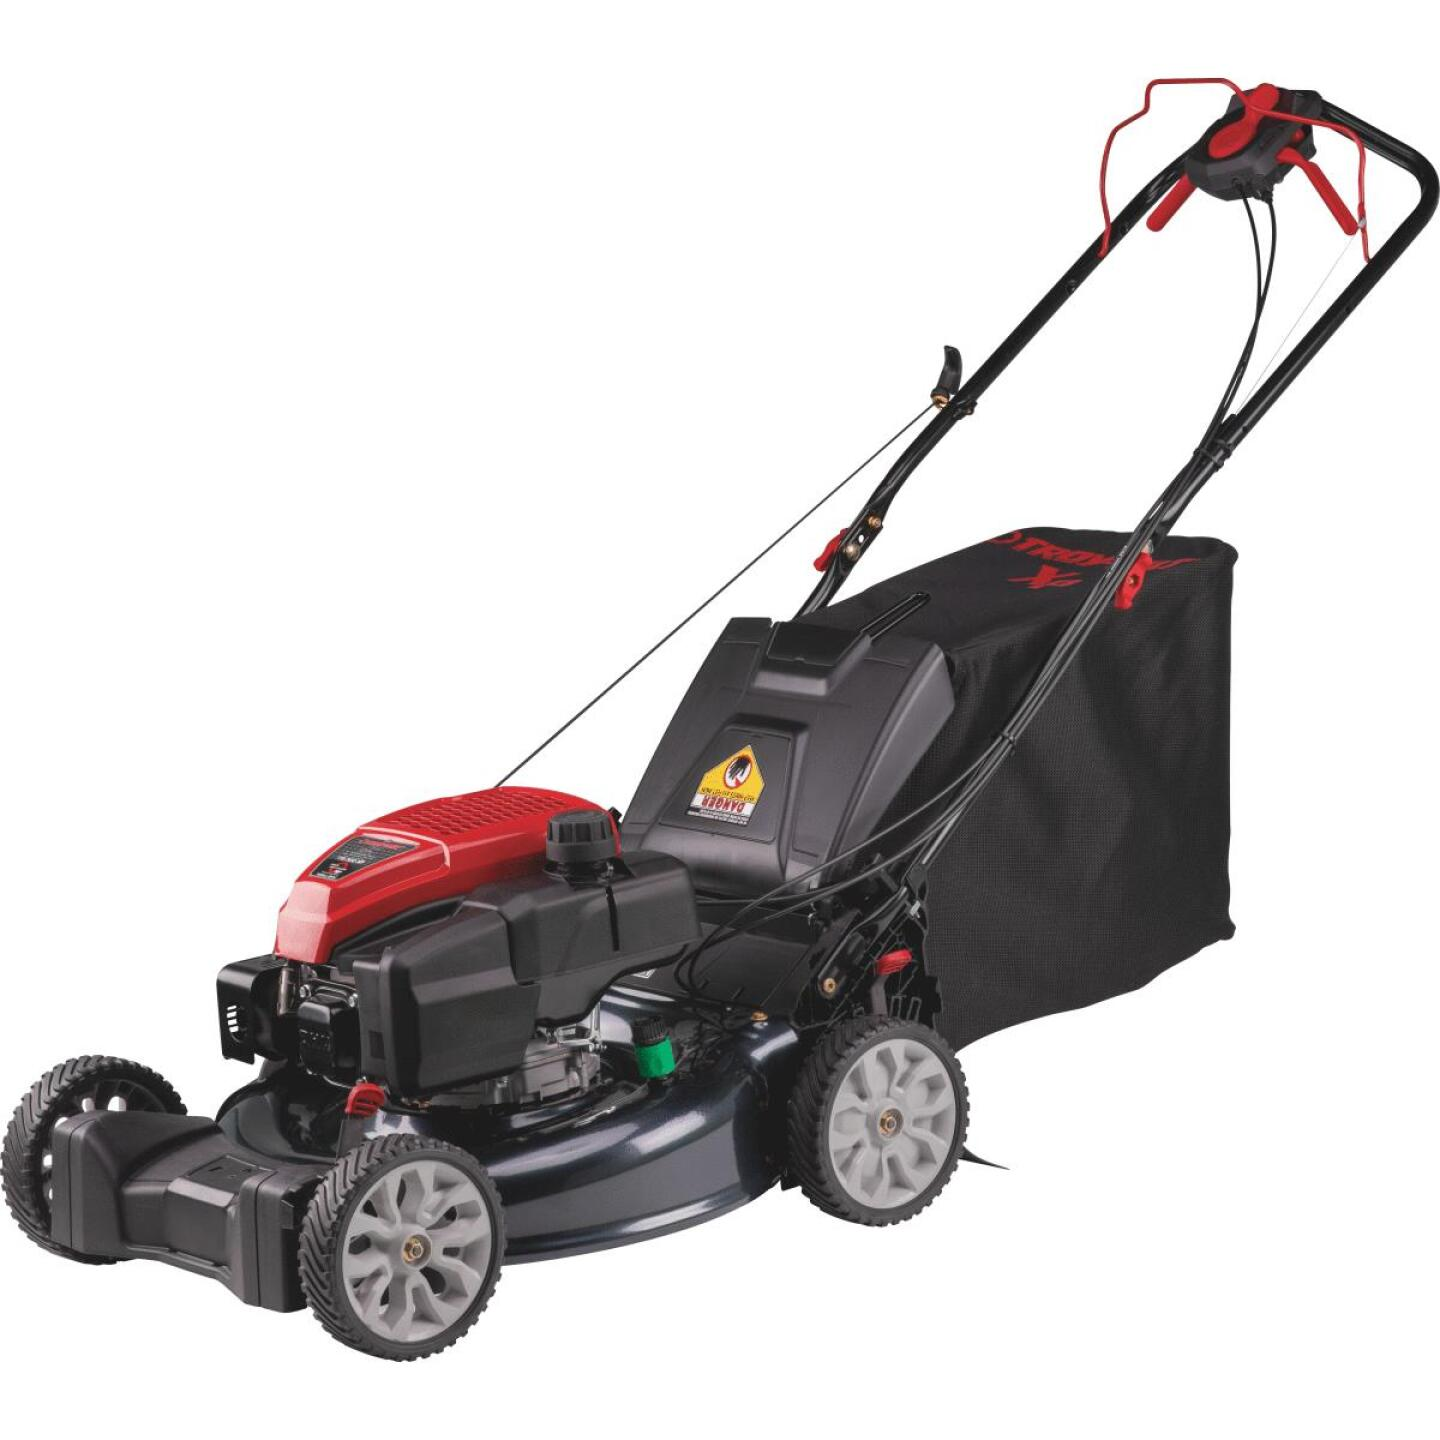 Troy-Bilt 21 In. 159cc OHV Briggs & Stratton Rear Wheel Drive Self-Propelled Gas Lawn Mower Image 1